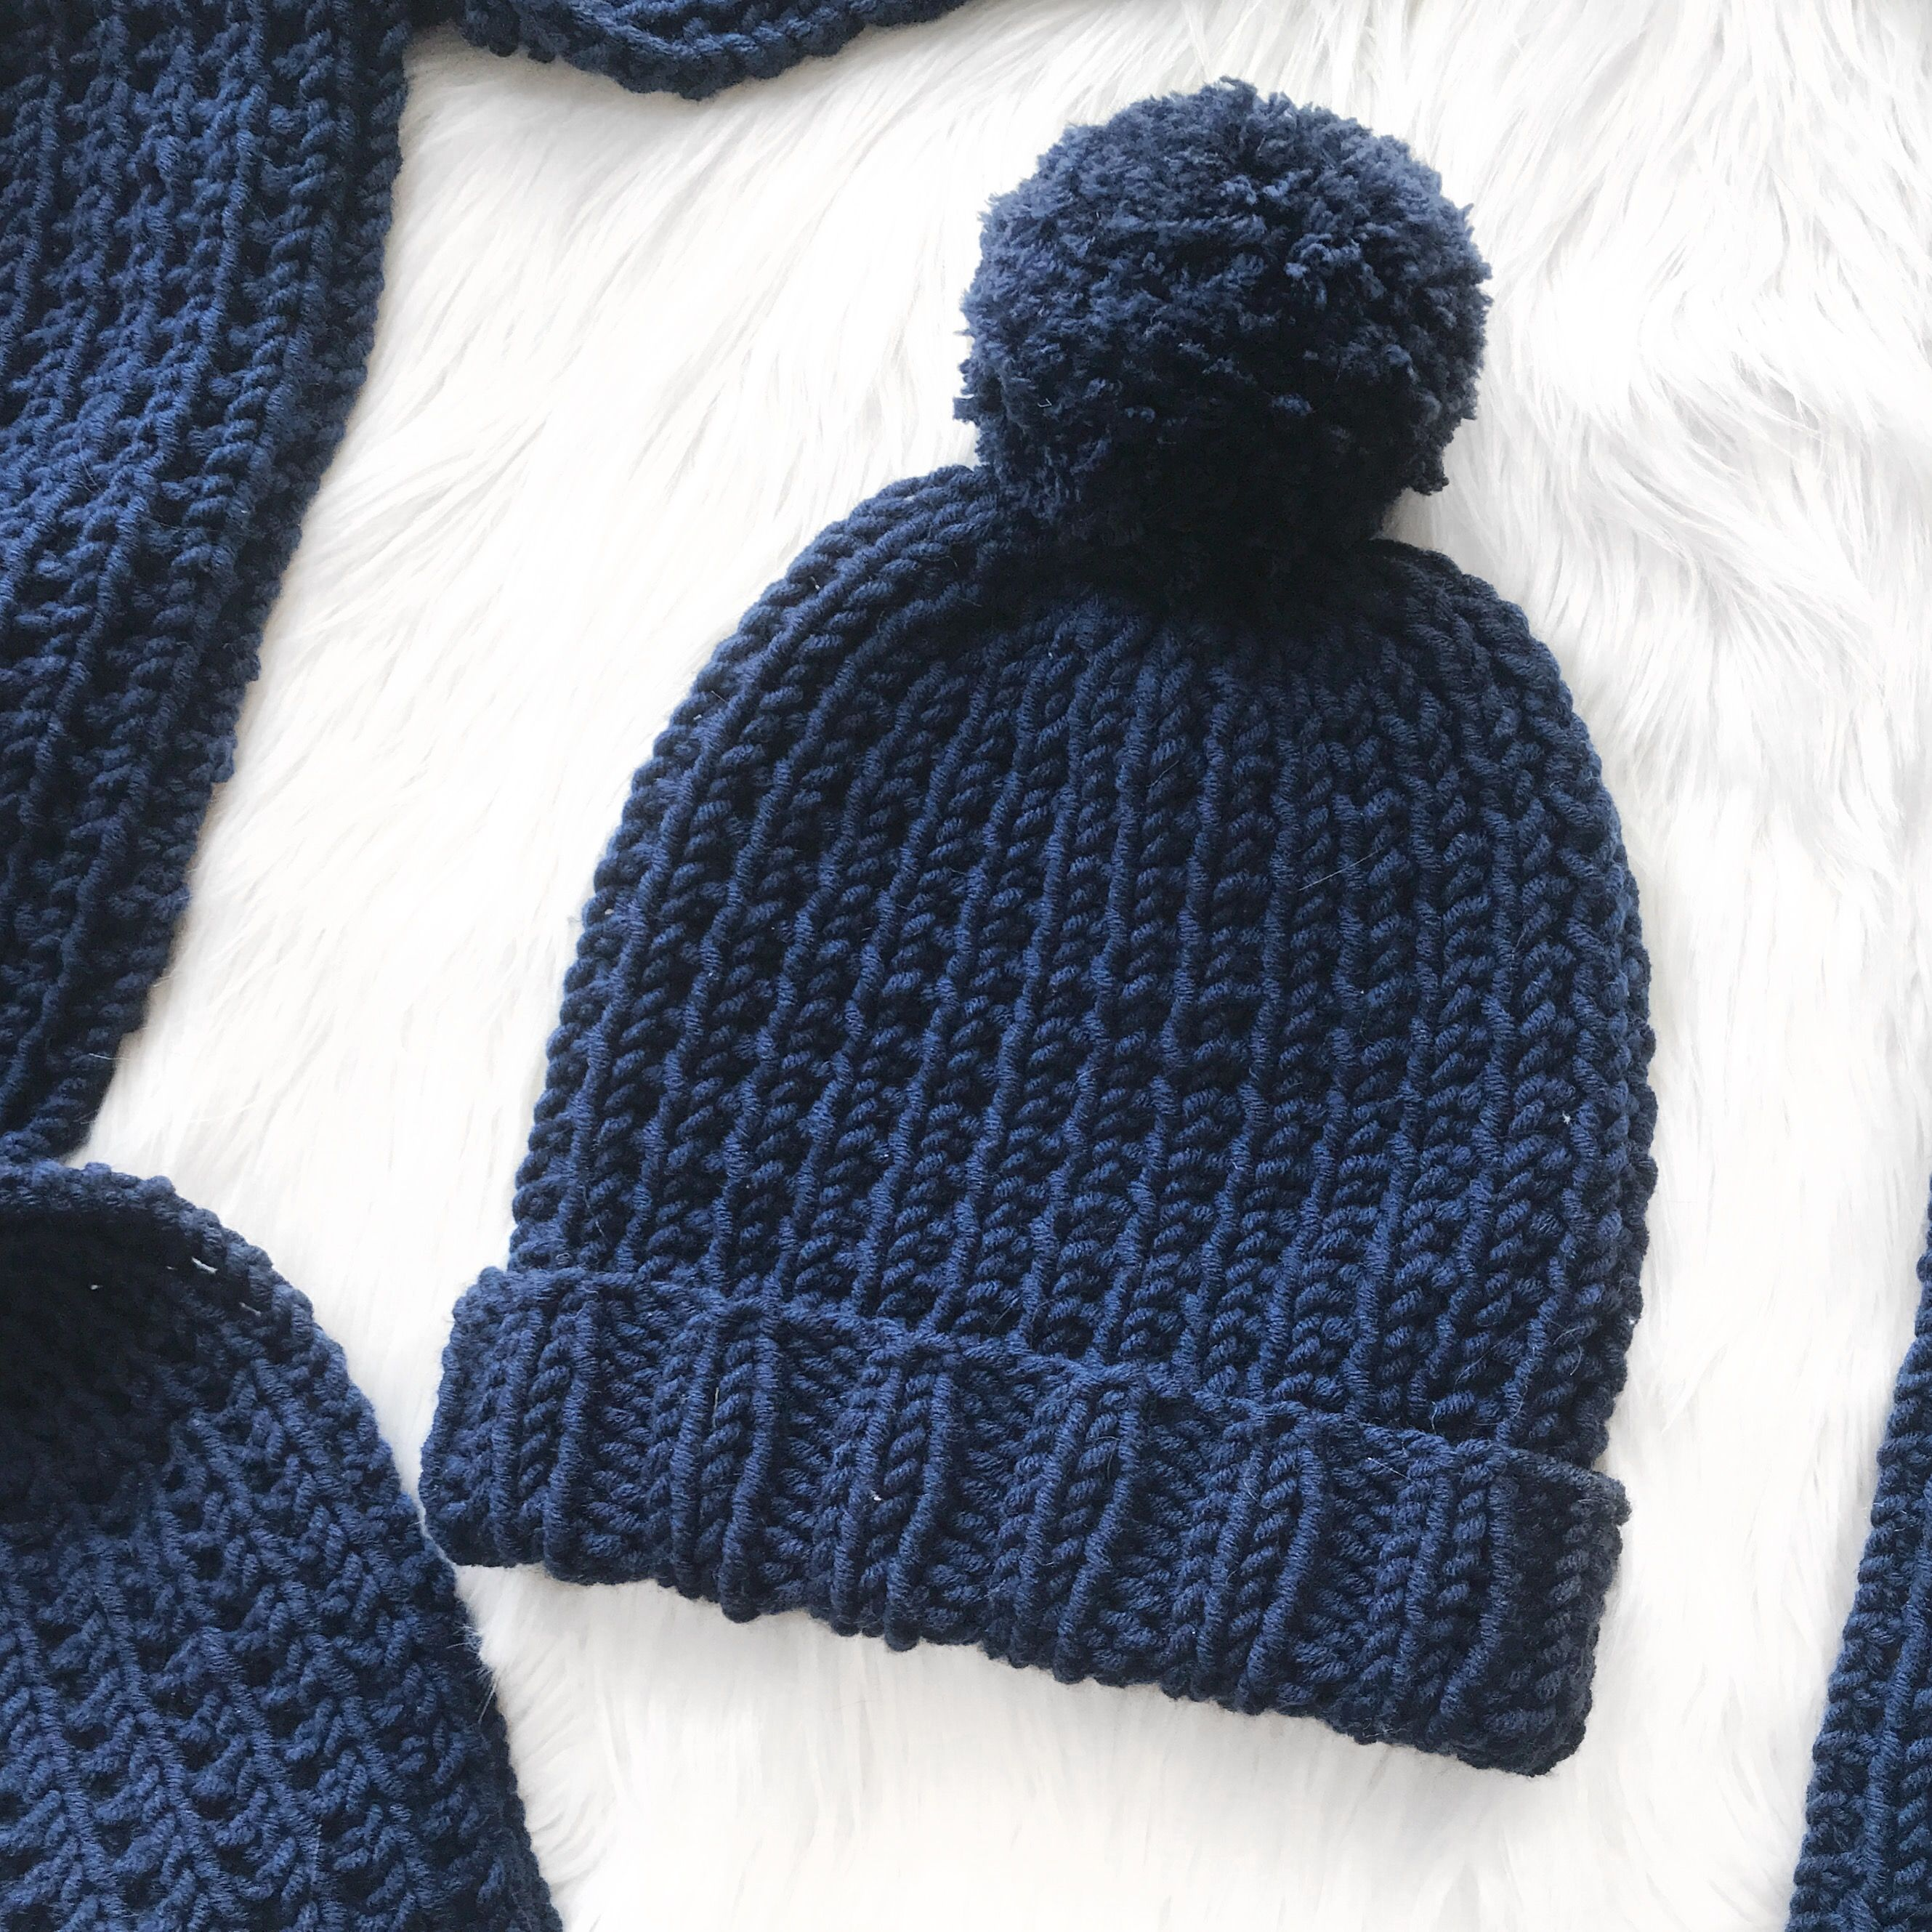 Free and easy knitting pattern | Beanie knitting patterns ...